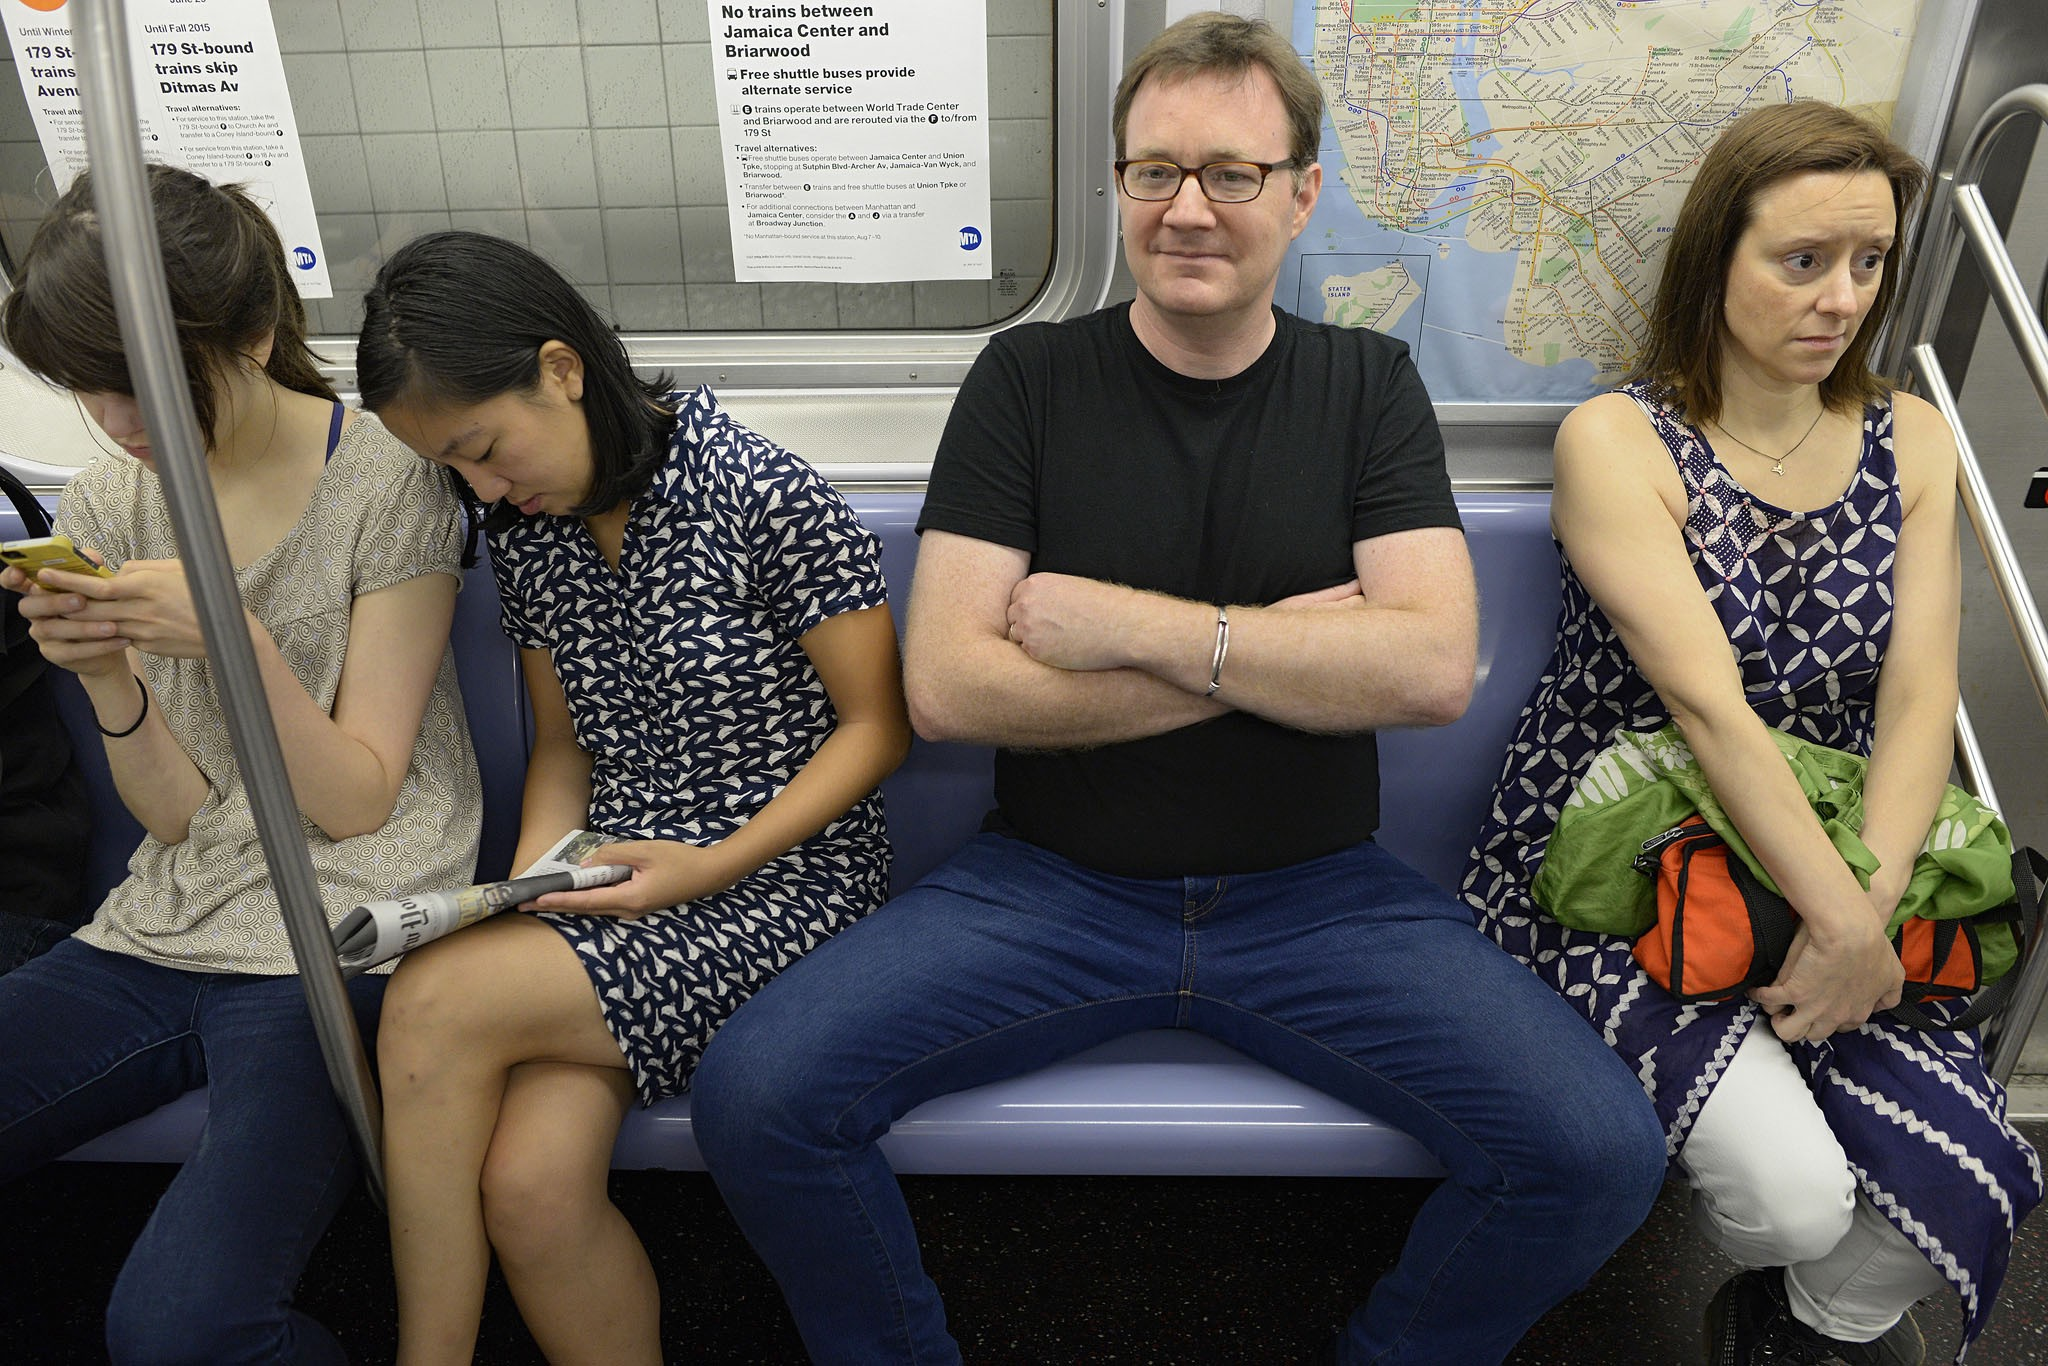 Man sitting with legs spread on the train. Women either side squashed into taking up a small space.